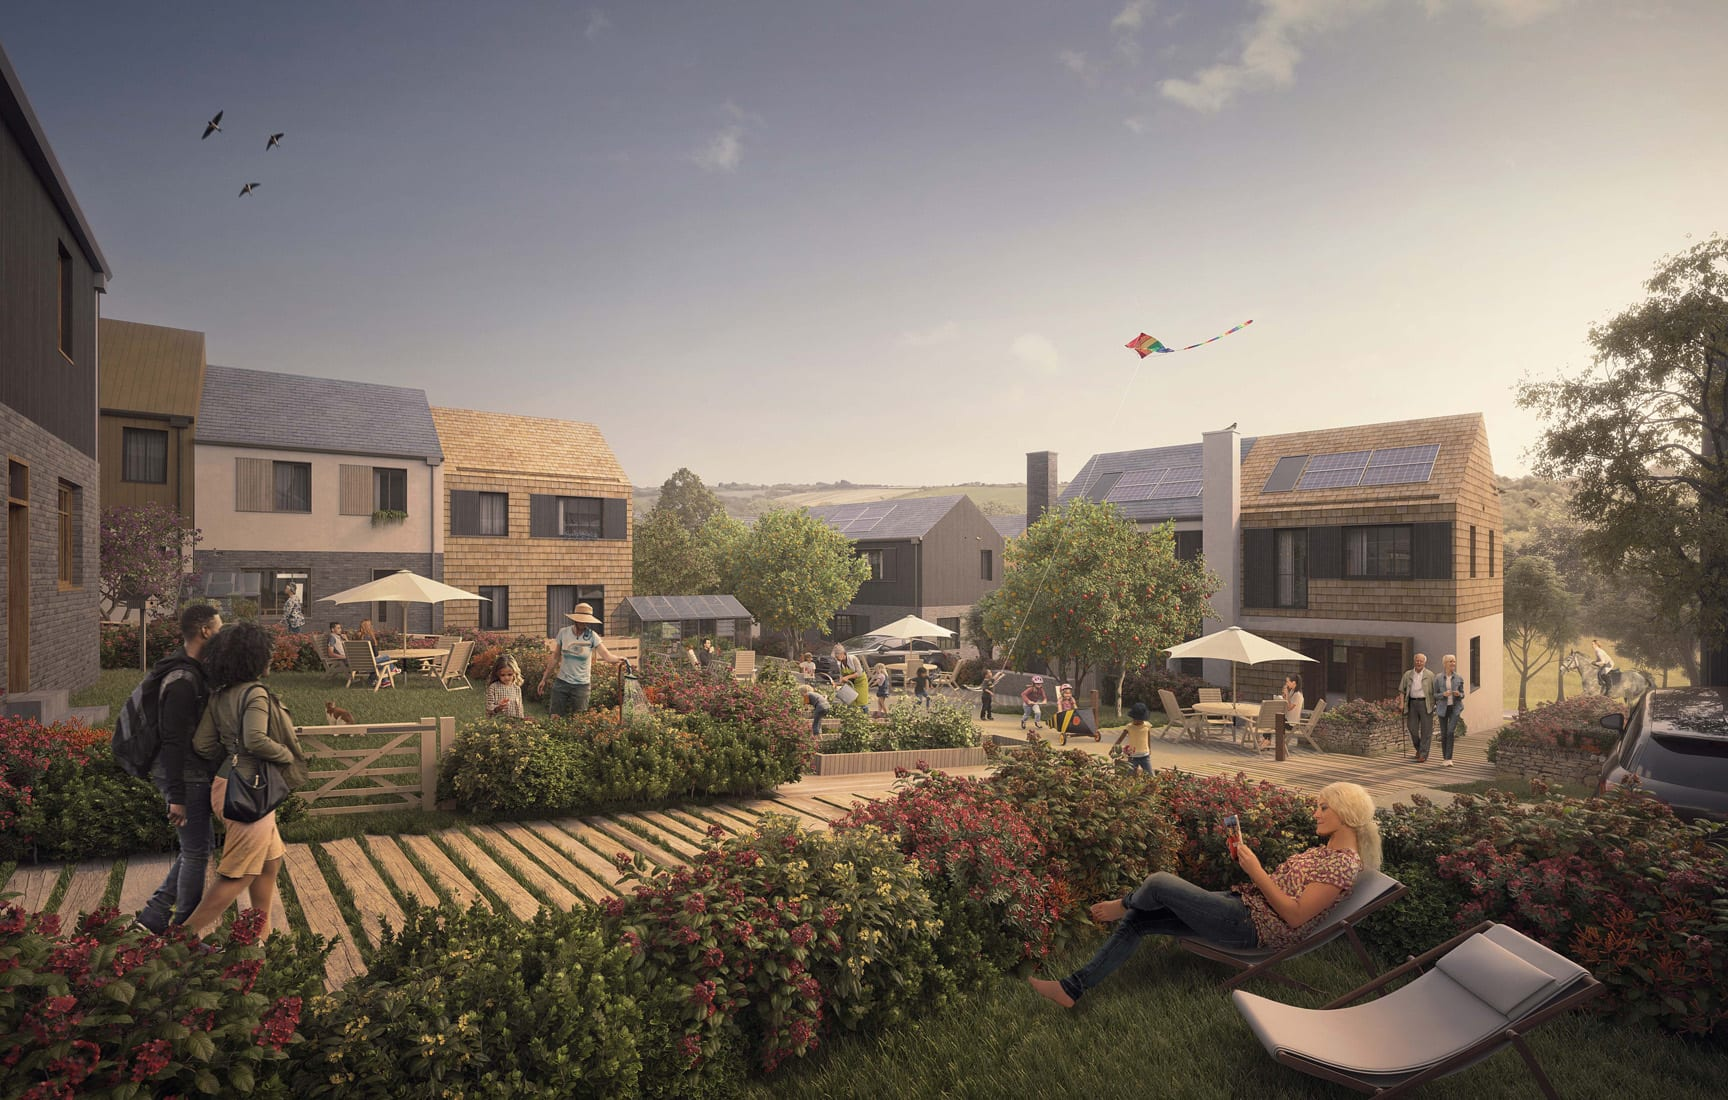 Cornwall Council buys land that will form part of Langarth Garden Village